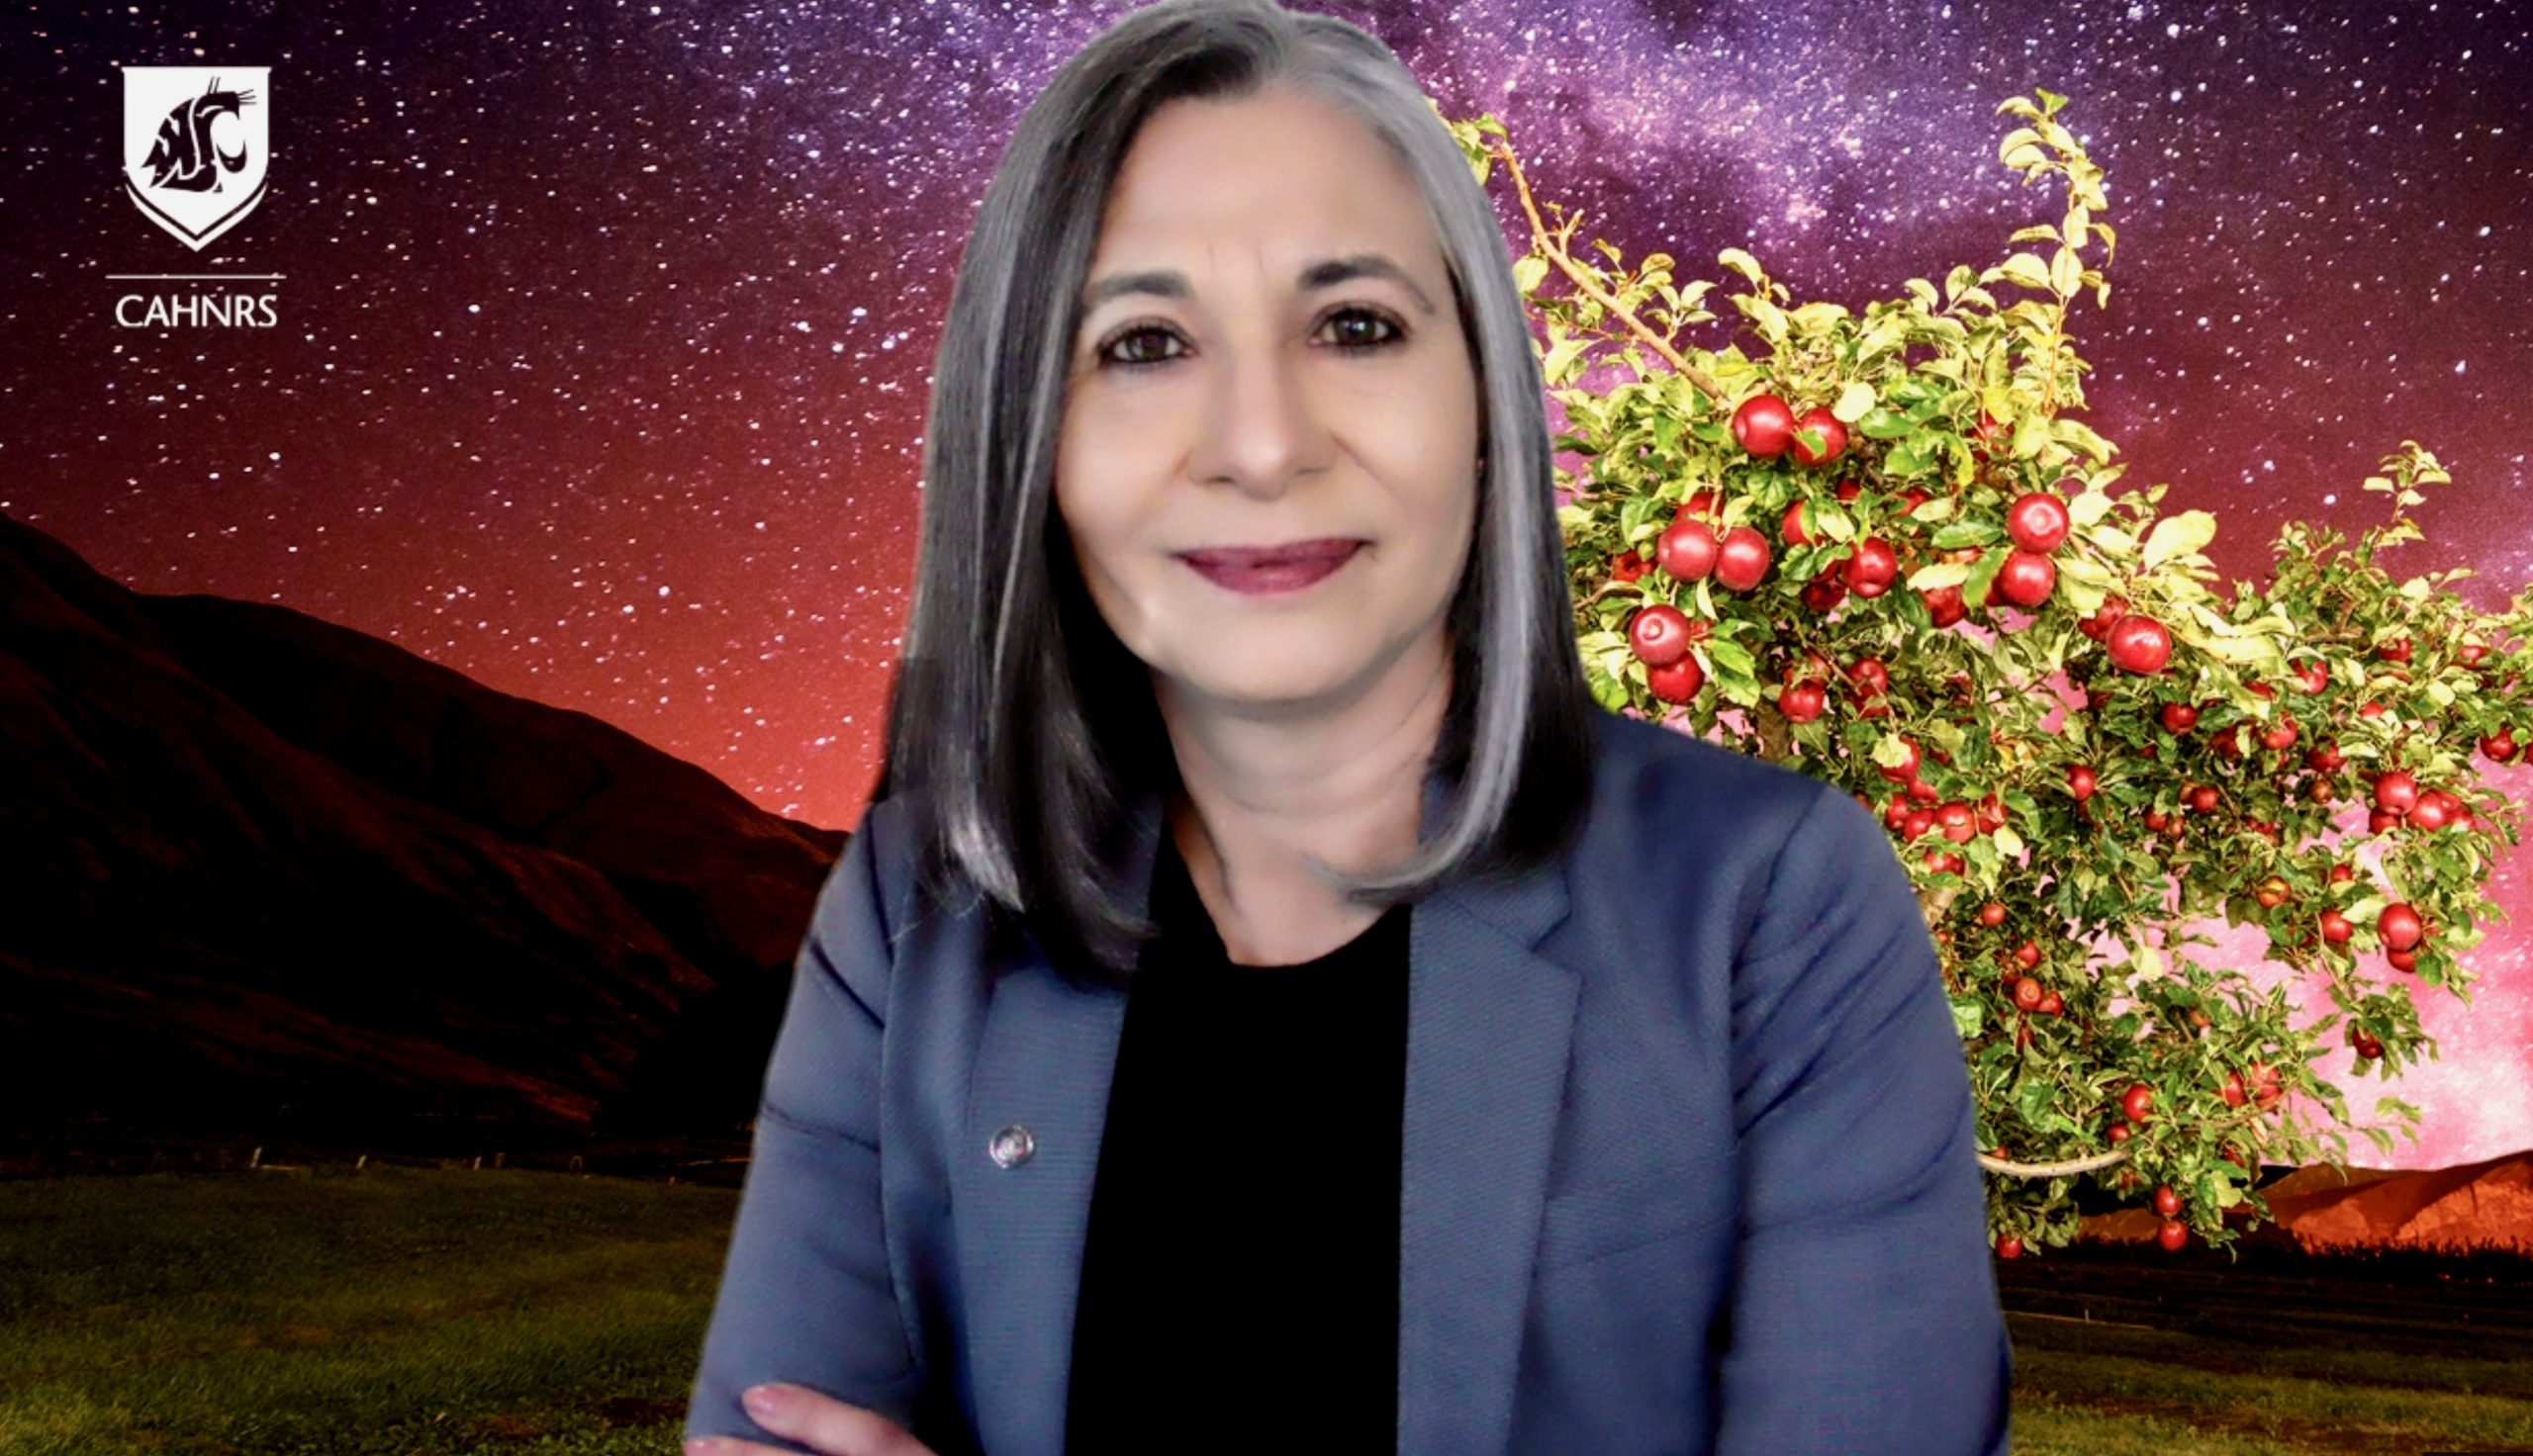 Gordillo poses in front of a stock background featuring a Cosmic Crisp apple tree